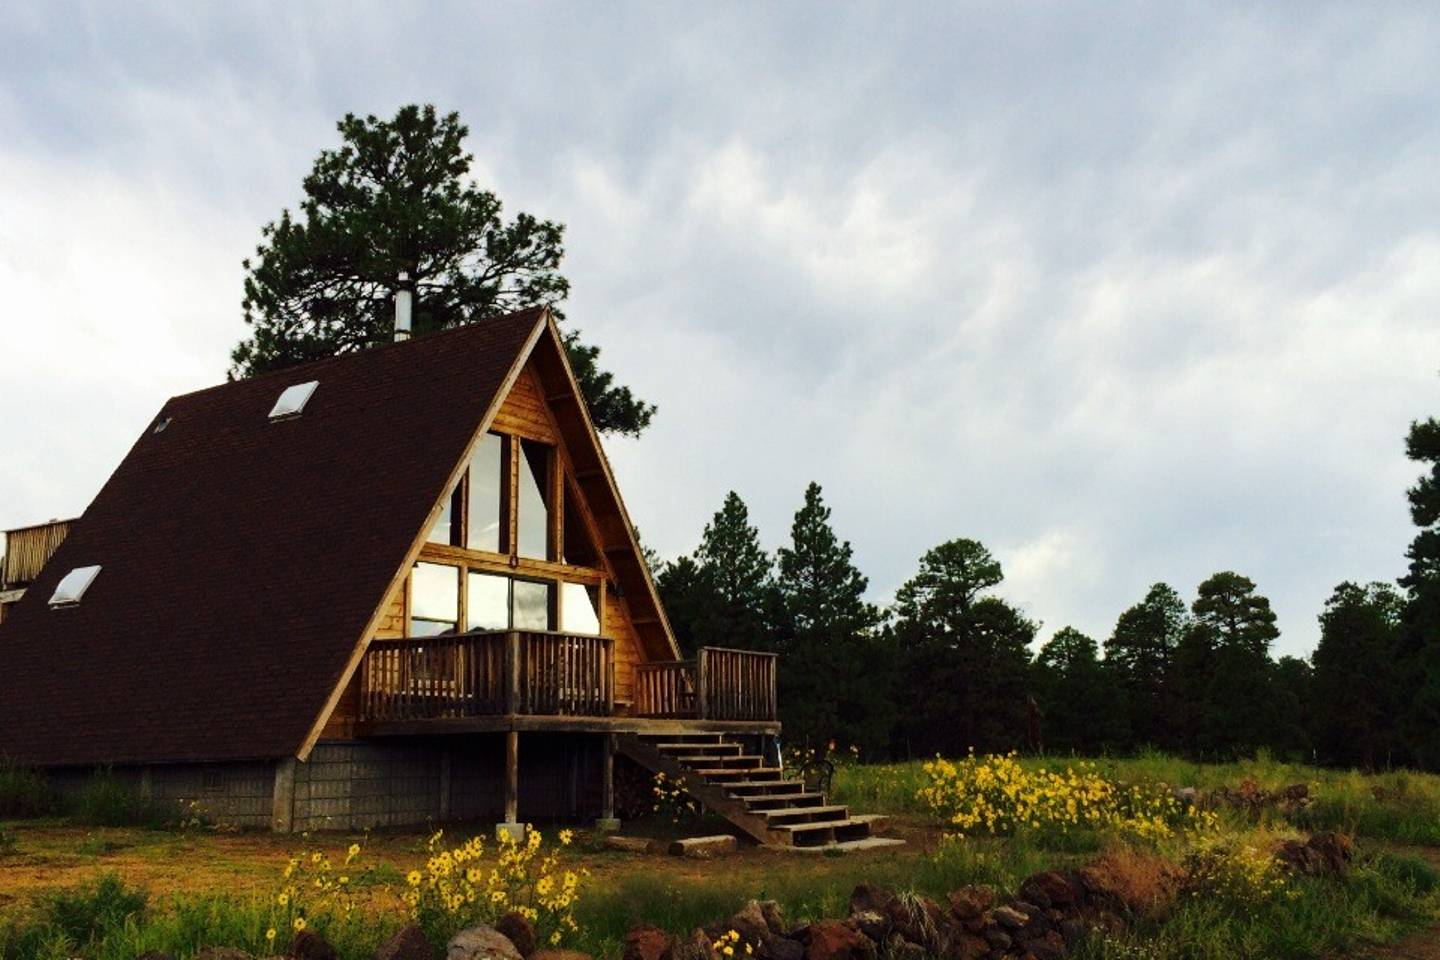 A-frame cabin in the Coconino National Forest in Arizona